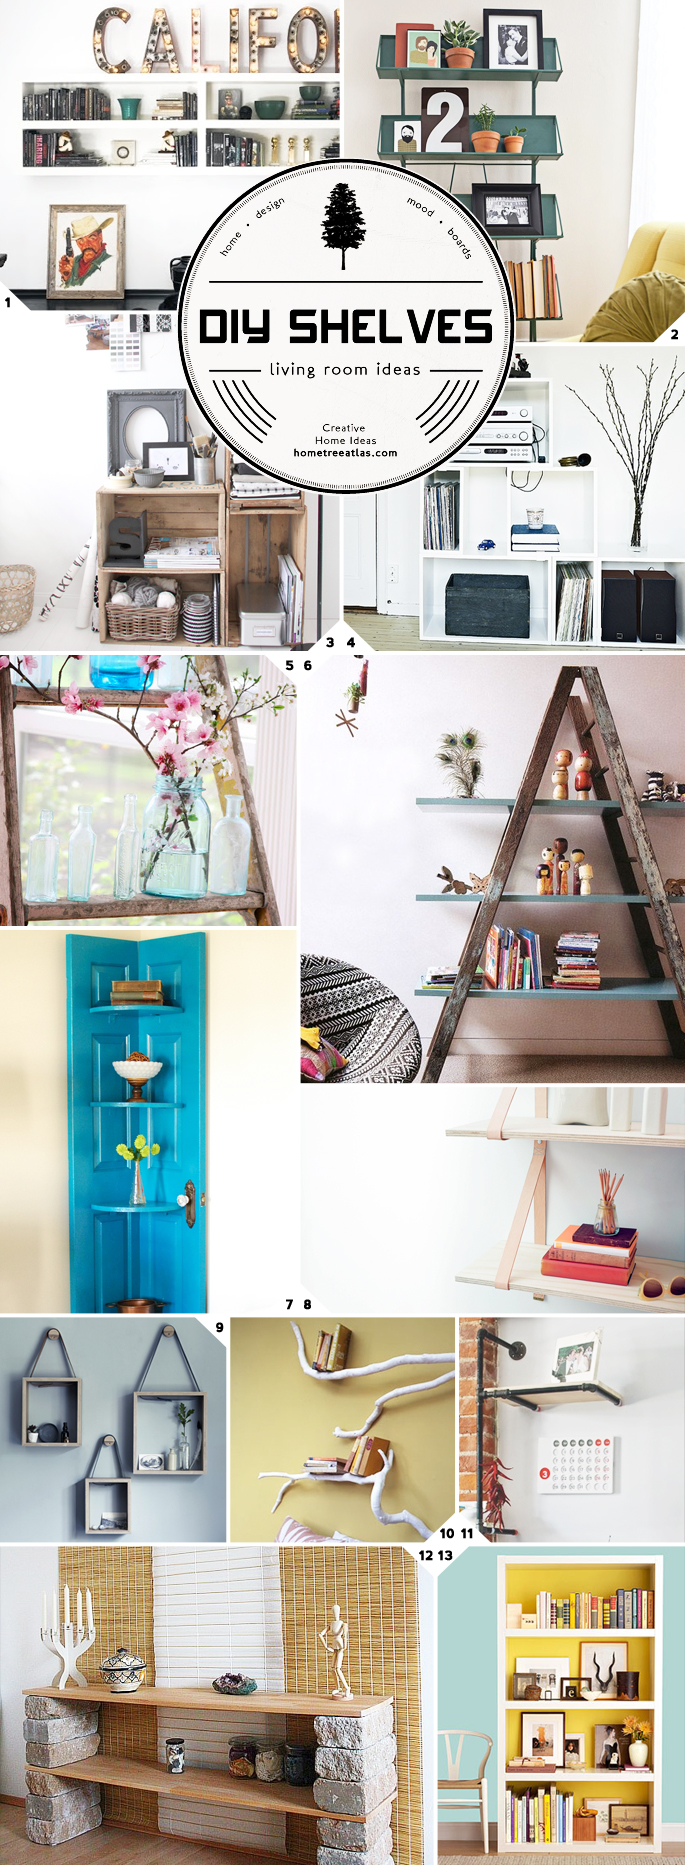 Creative DIY Ideas for Living Room Shelves | Home Tree Atlas